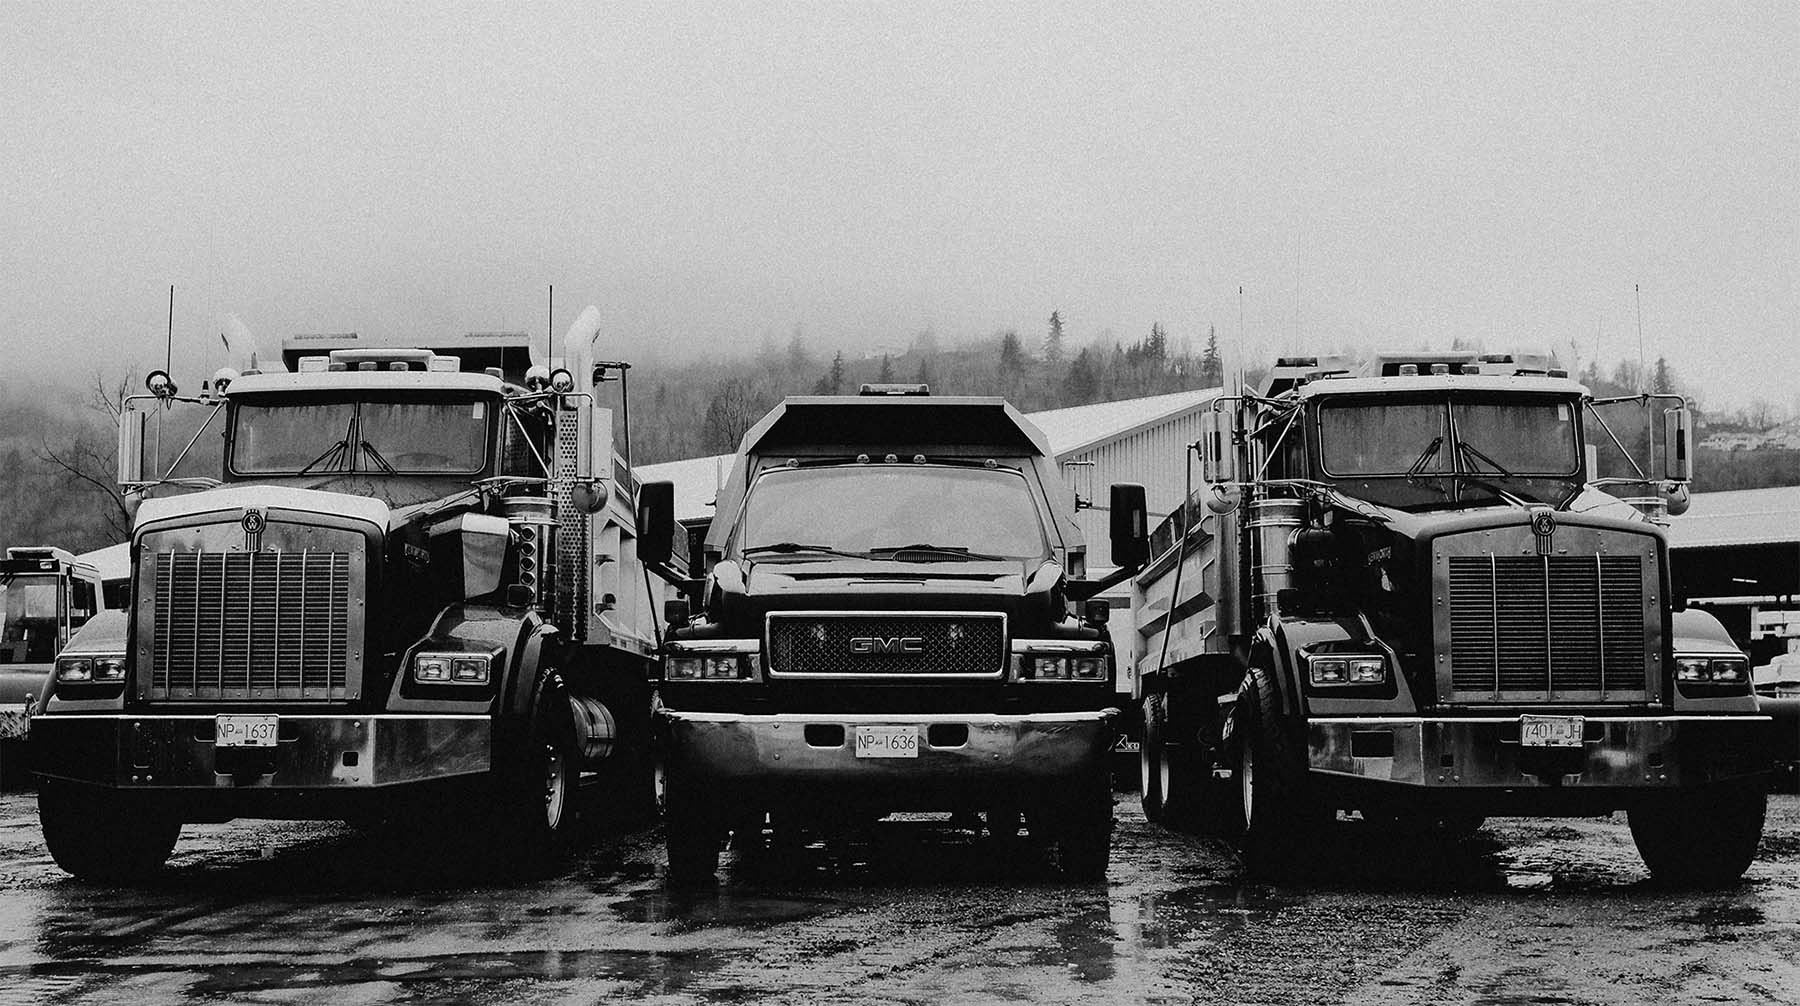 Strohmaier Excavating trucks parked in their lot in Chilliwack, BC